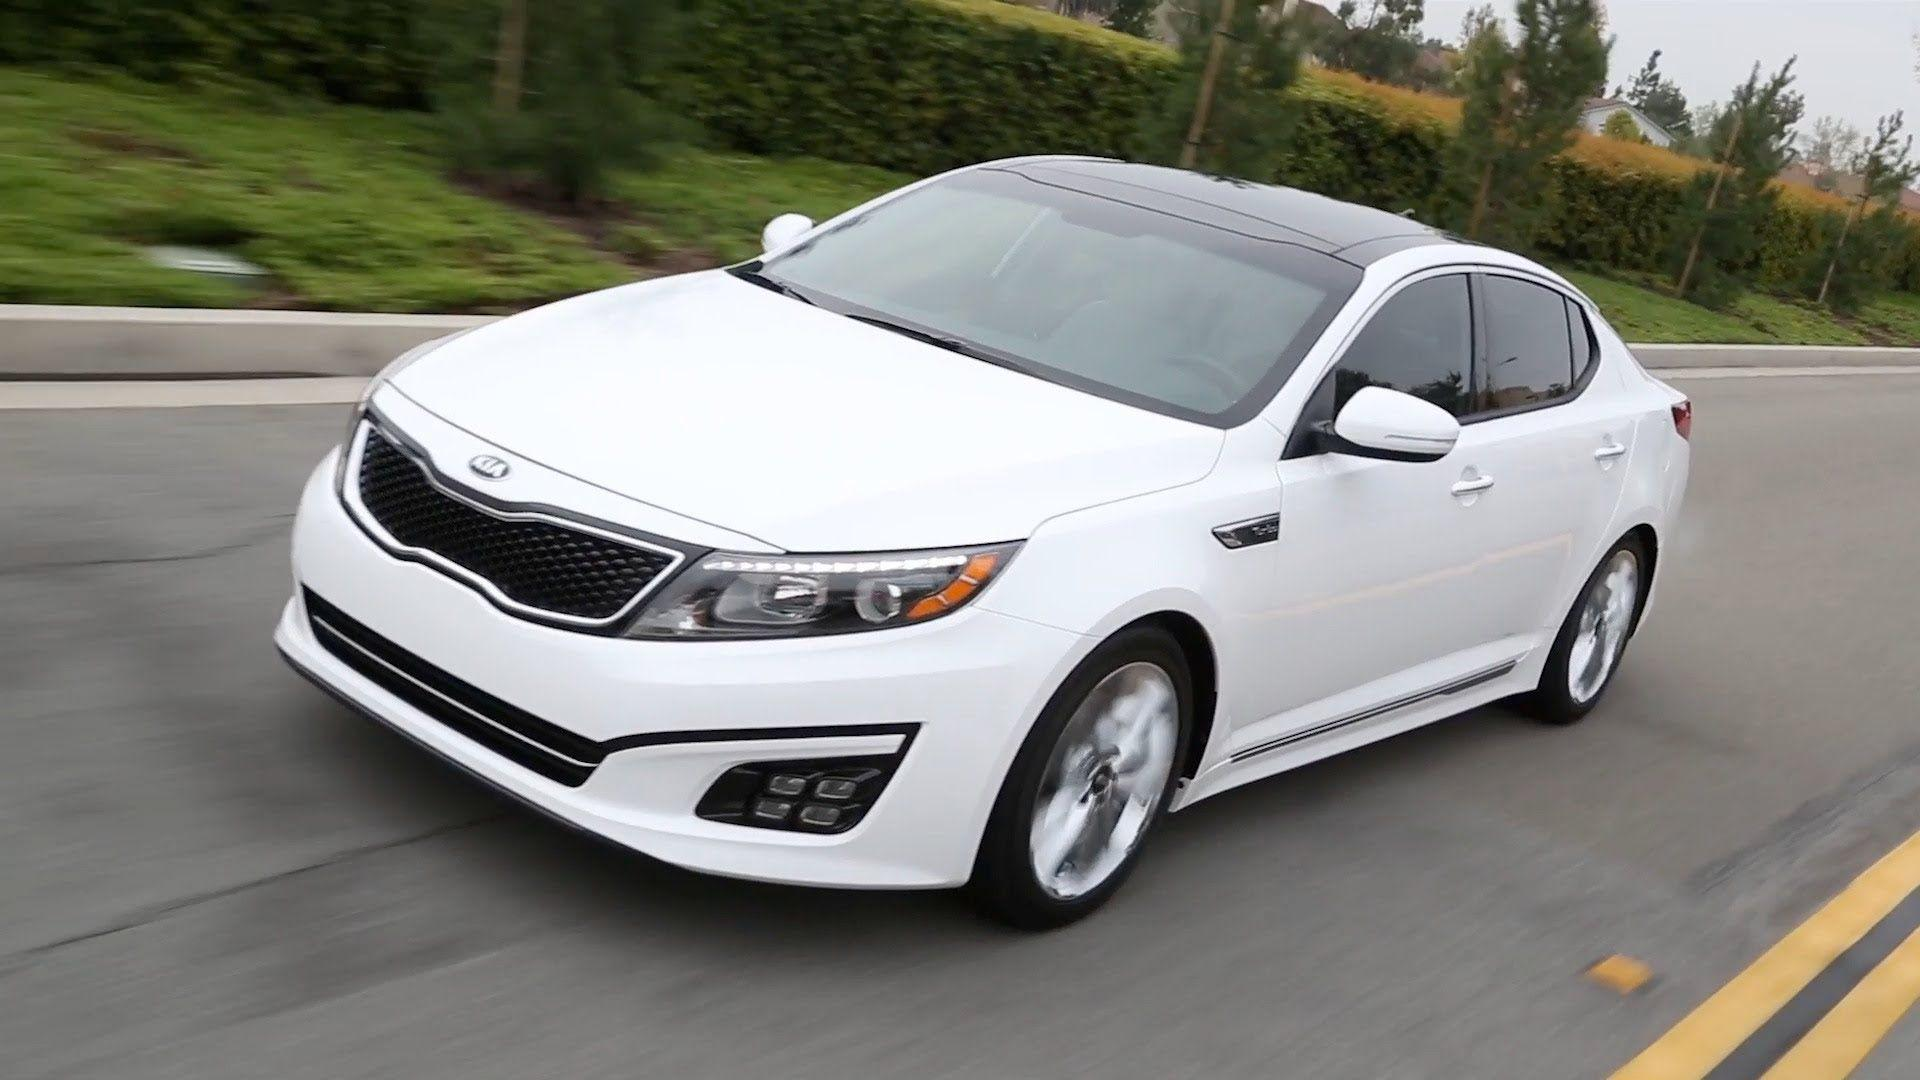 2014 Kia Optima SXL - YouTube